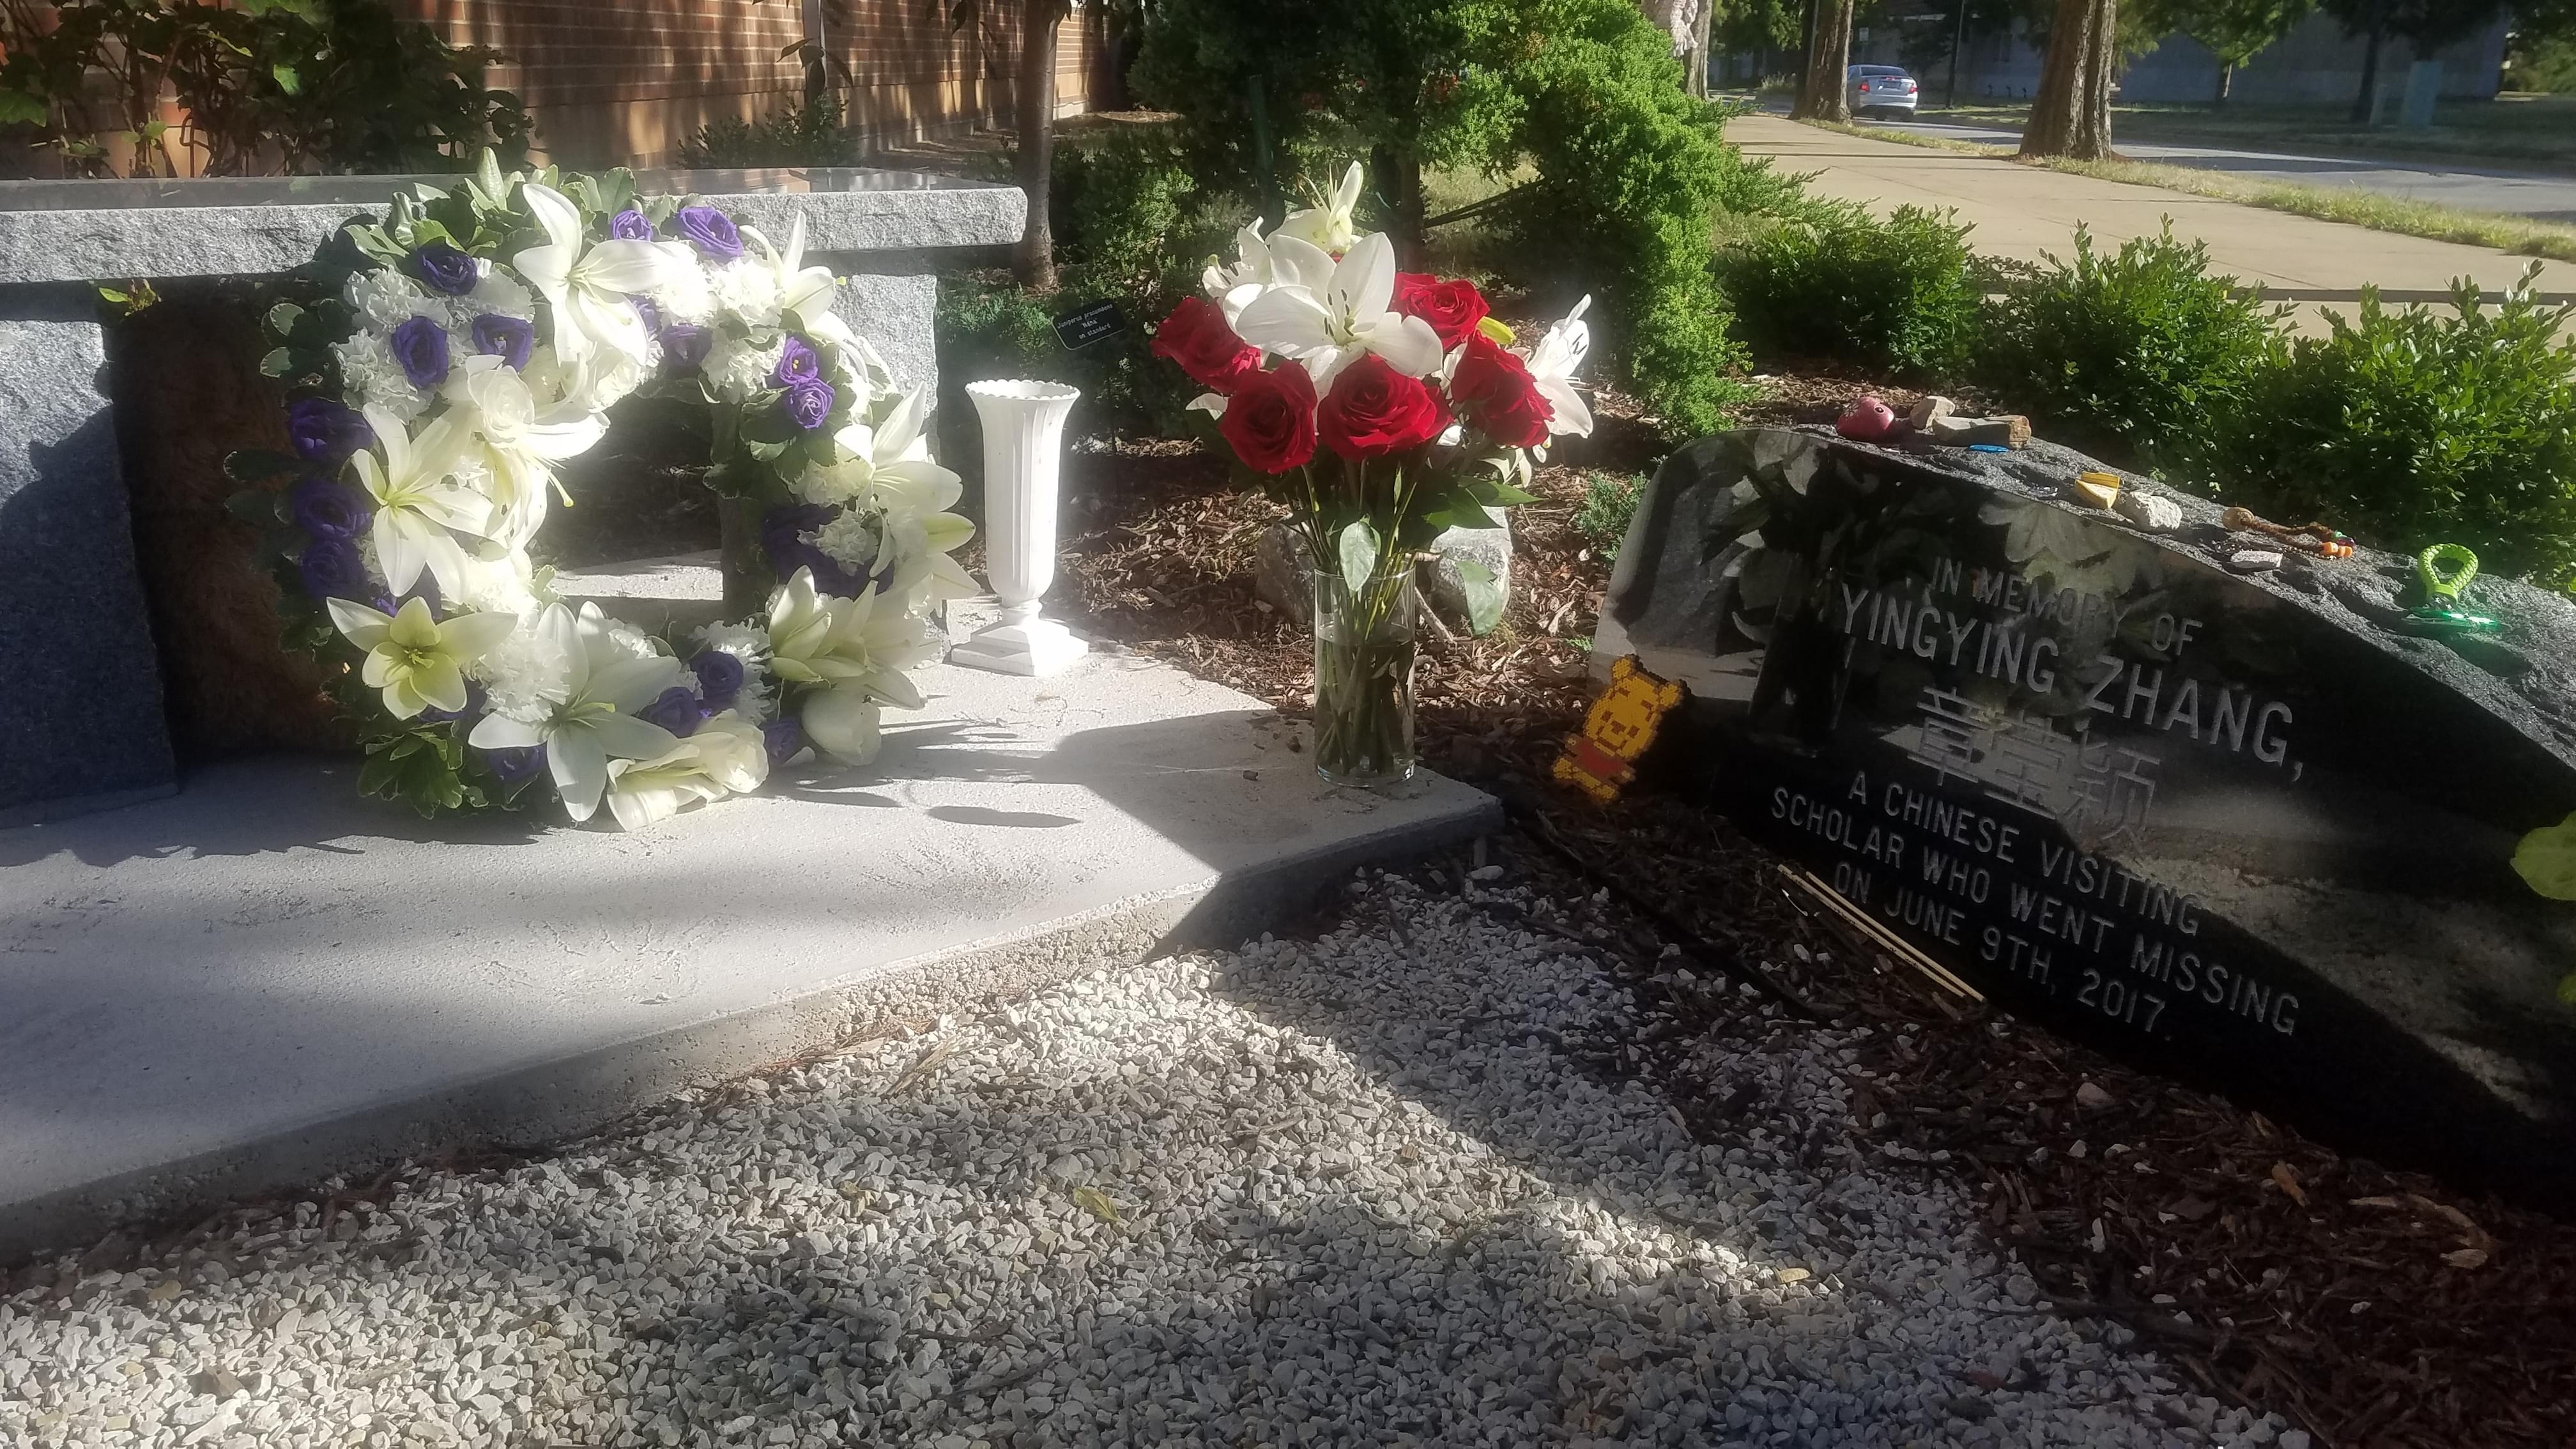 A wreath and flowers decorate the Yingying Zhang Memorial Garden.